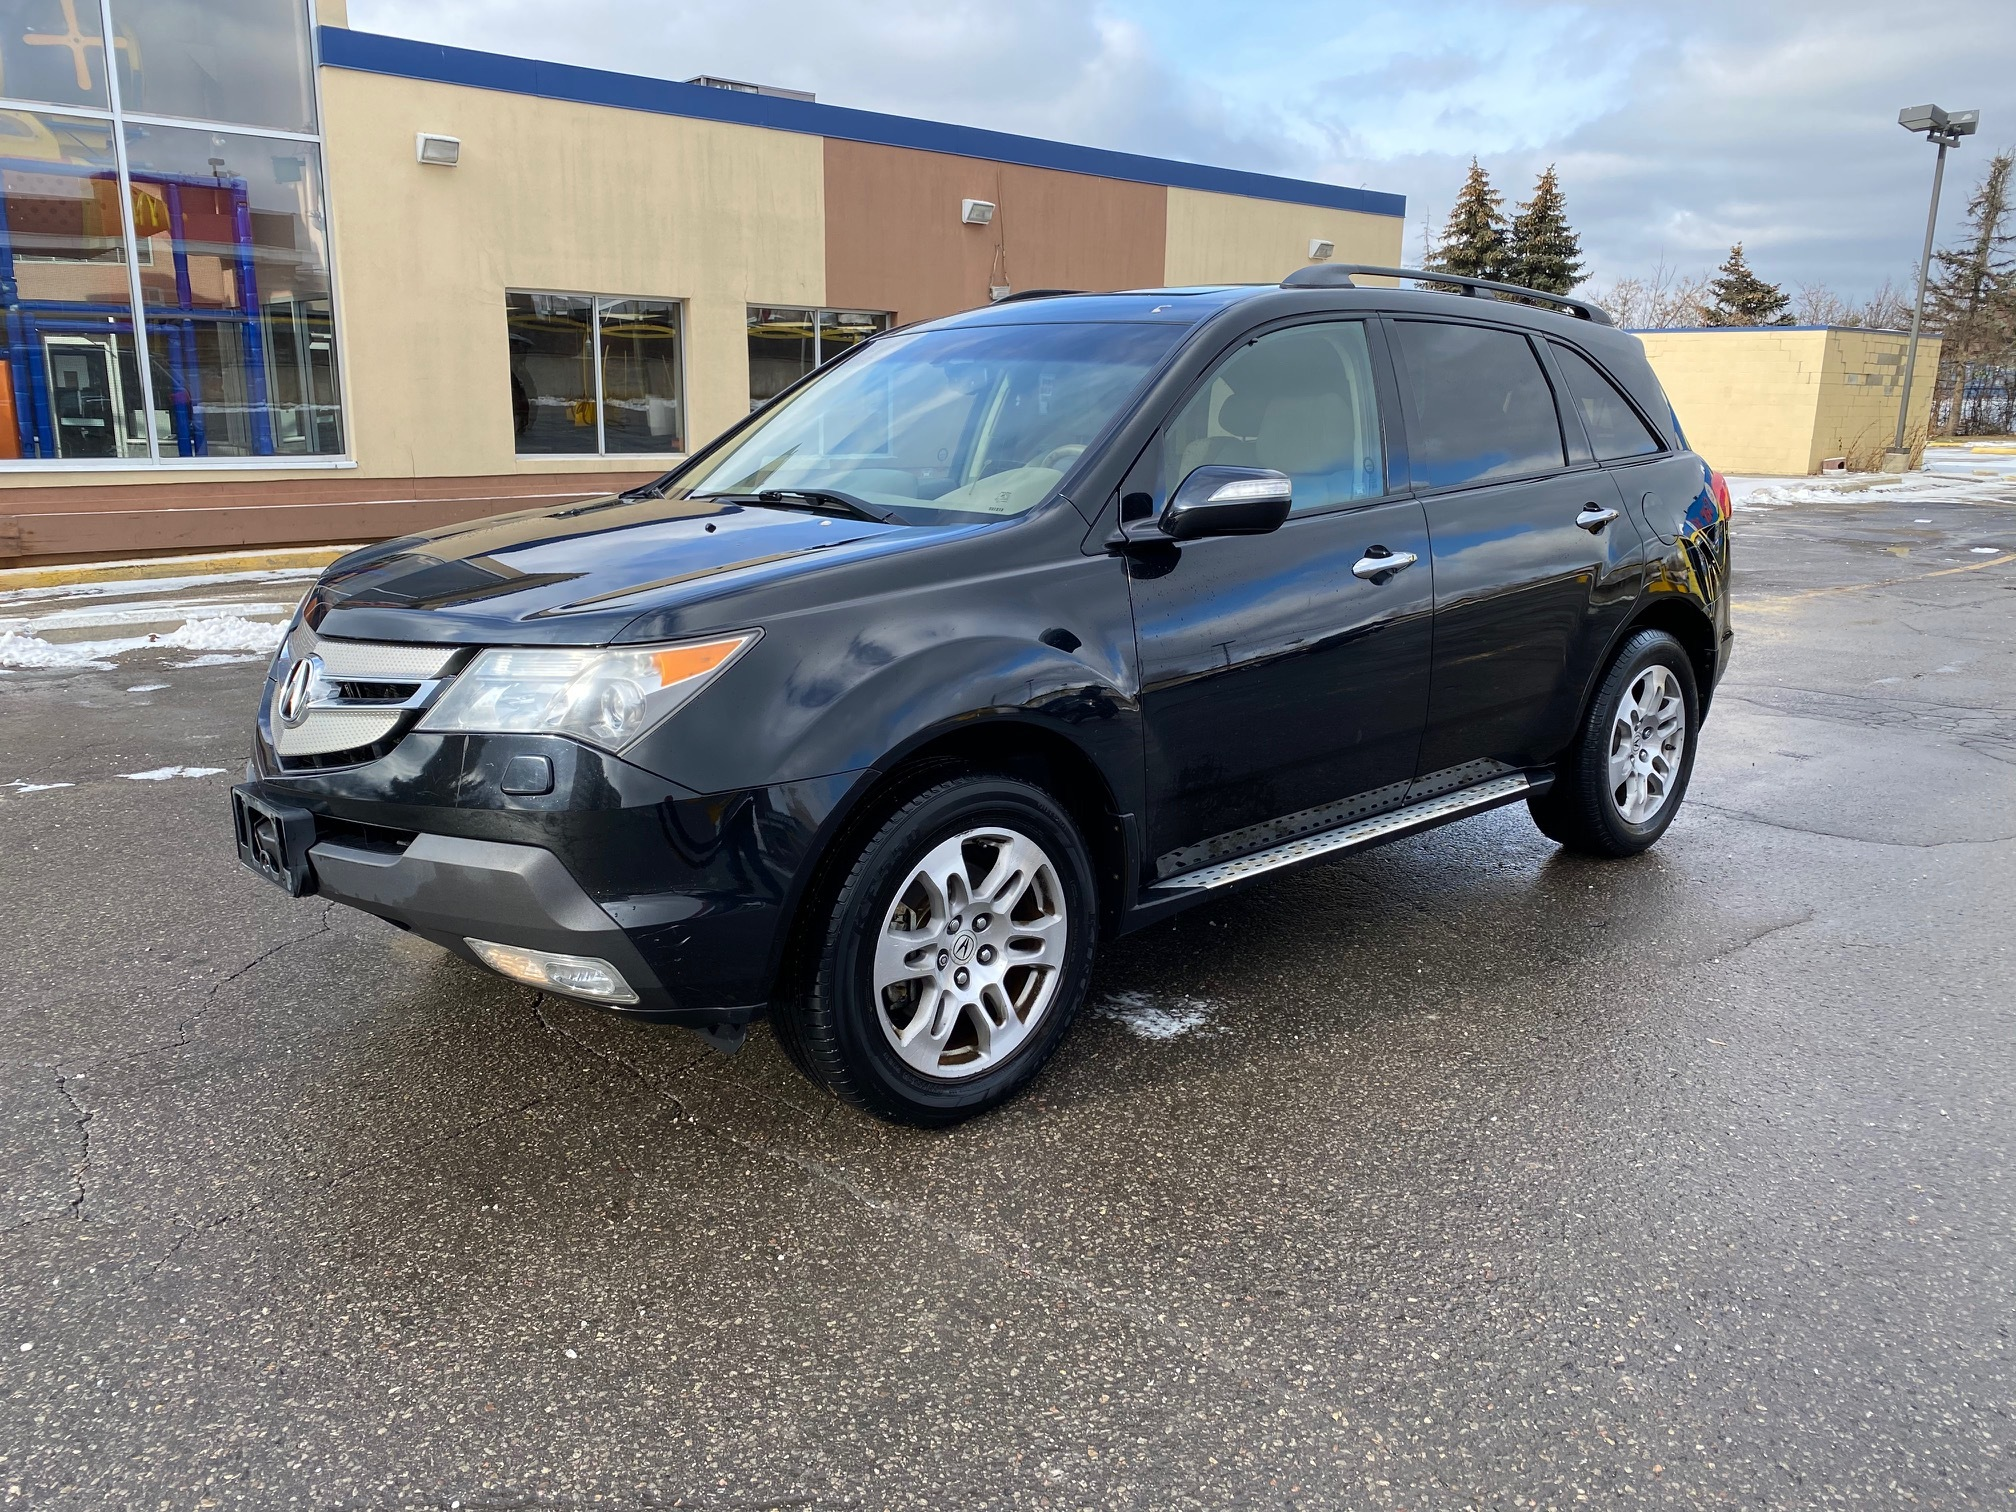 2009 Acura Mdx In Toronto On Dynasty Auto Selection Inc 2hnyd28669h000681